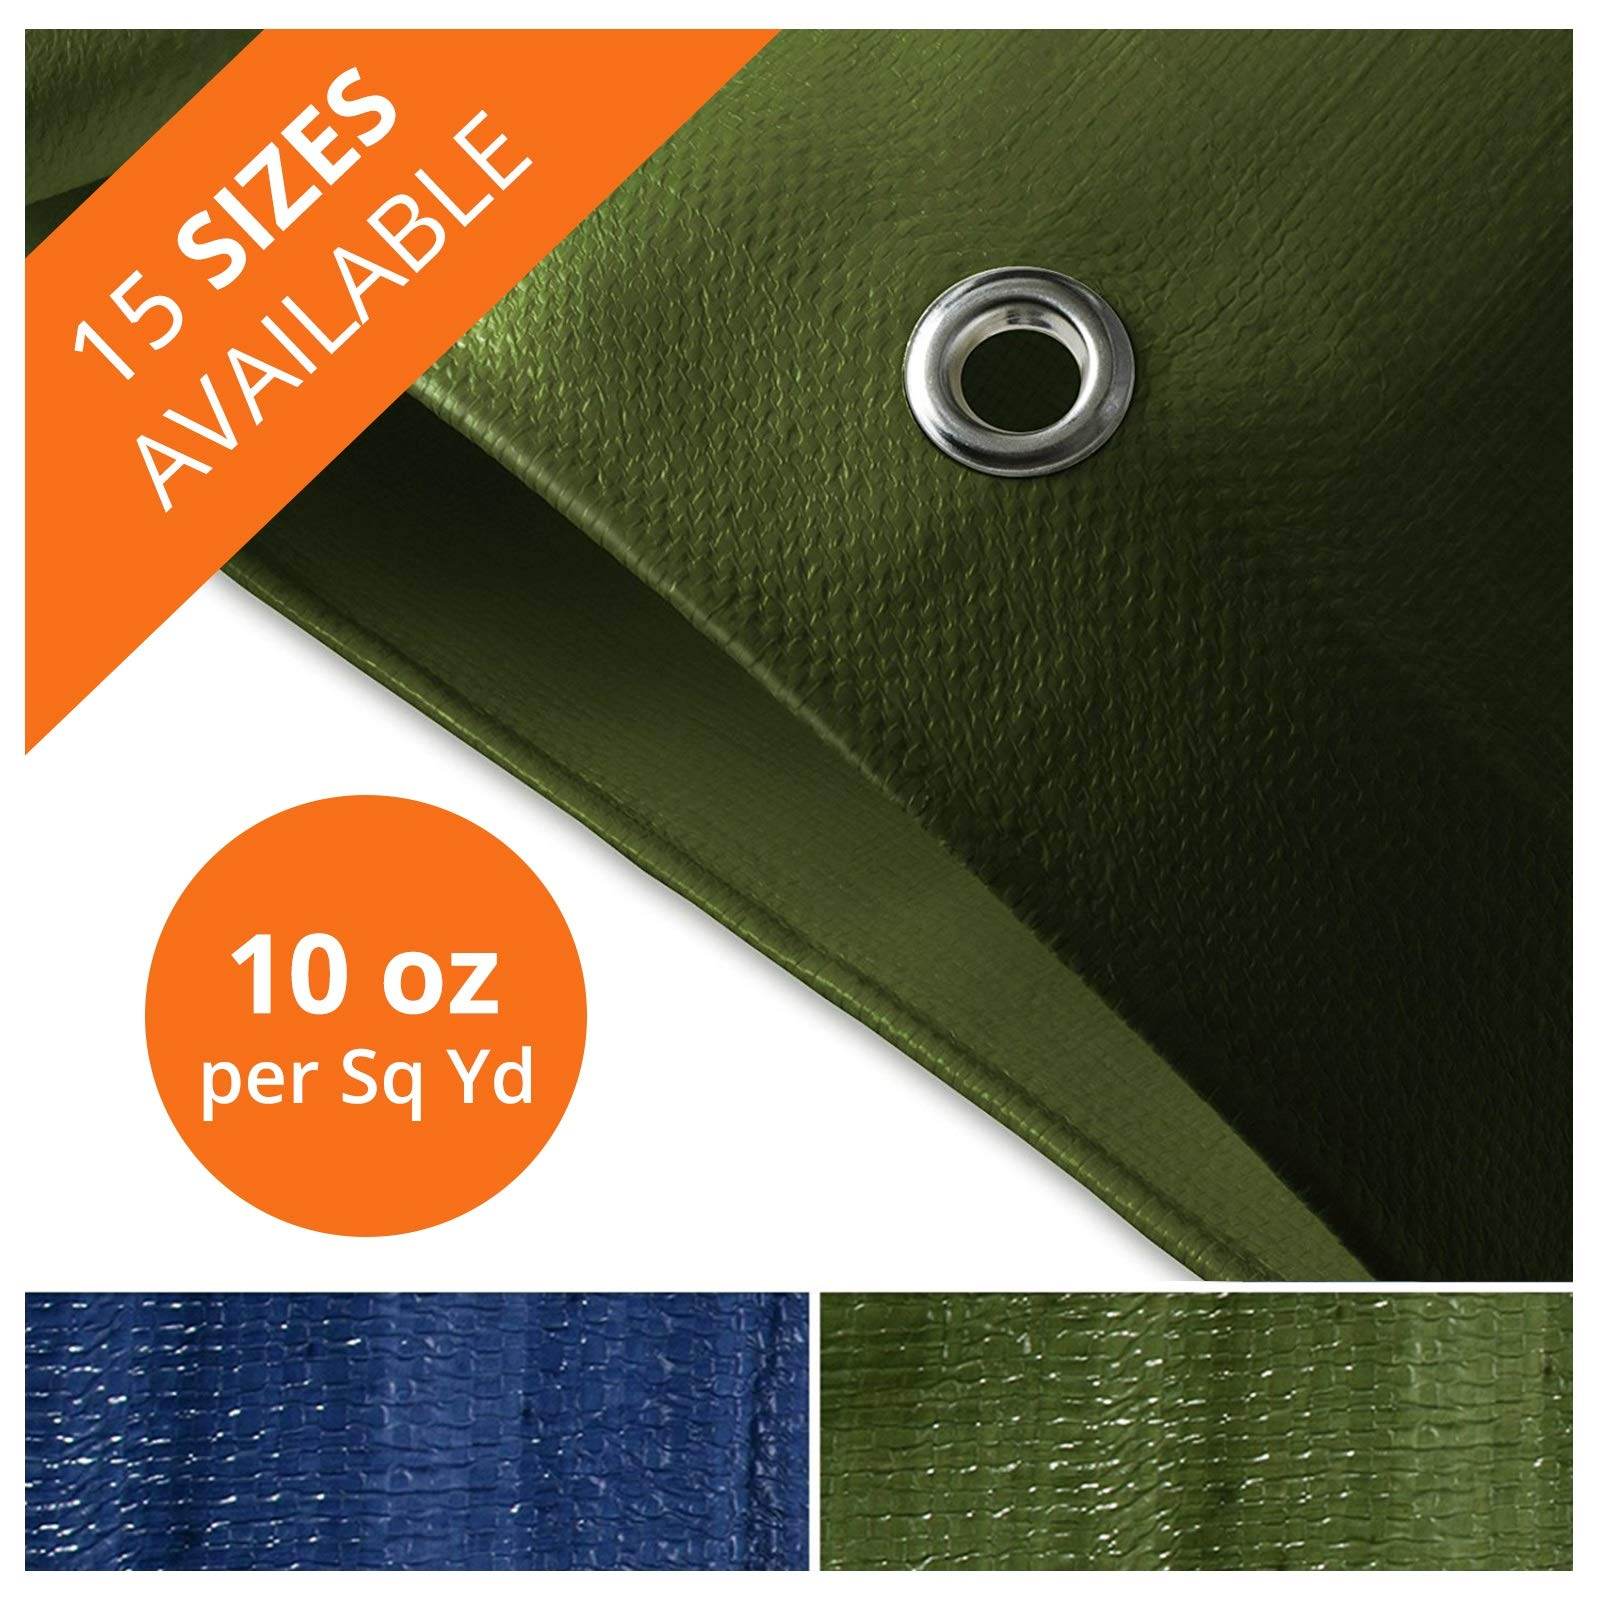 Tarps Heavy Duty Waterproof | Ground Tent Trailer Cover | Large Tarpaulin in Multiple Sizes | 10 oz/Sq Yd | Green - 12' x 14'